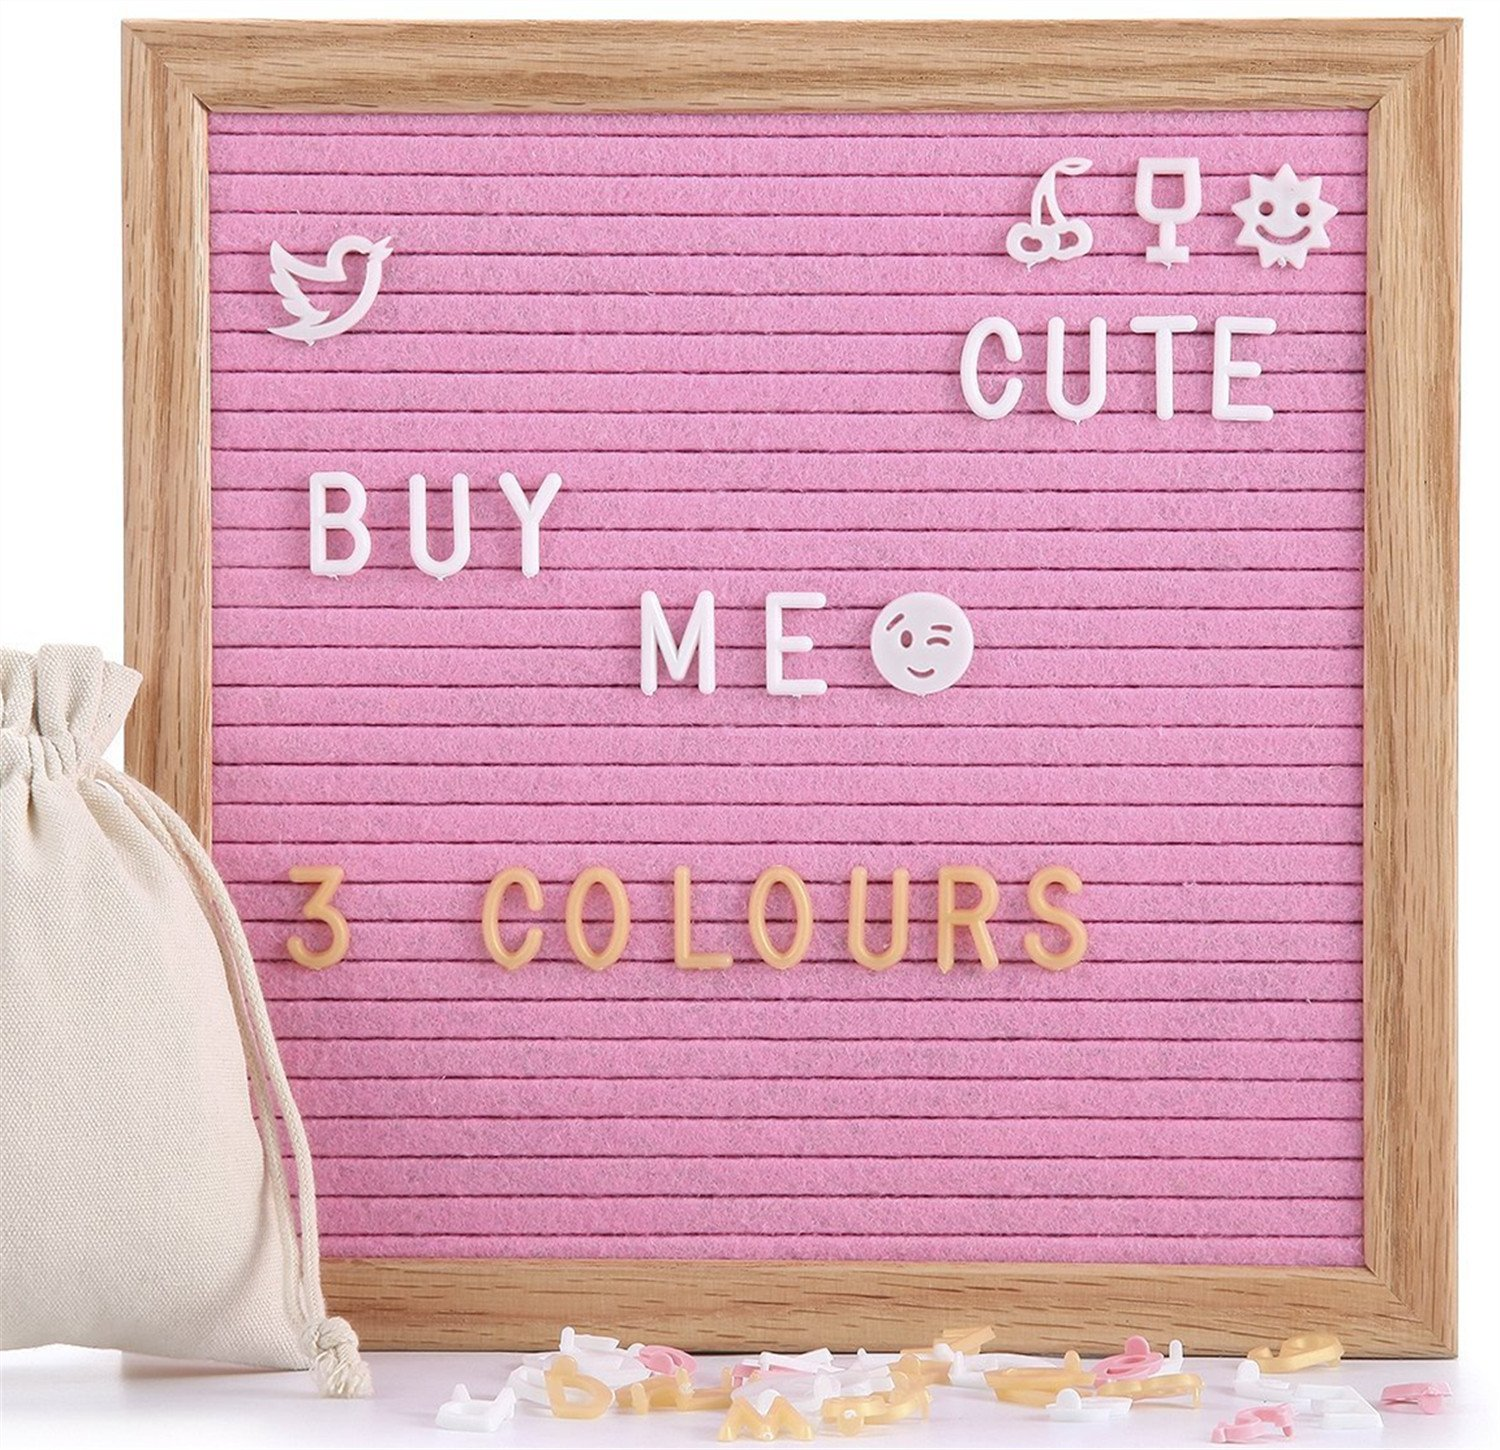 Felt Letter Board Christmas Emojis, 13 PCS Lovely Christmas Symbols for Felt Letter Board (Not Included Board and Letters) LifeEase